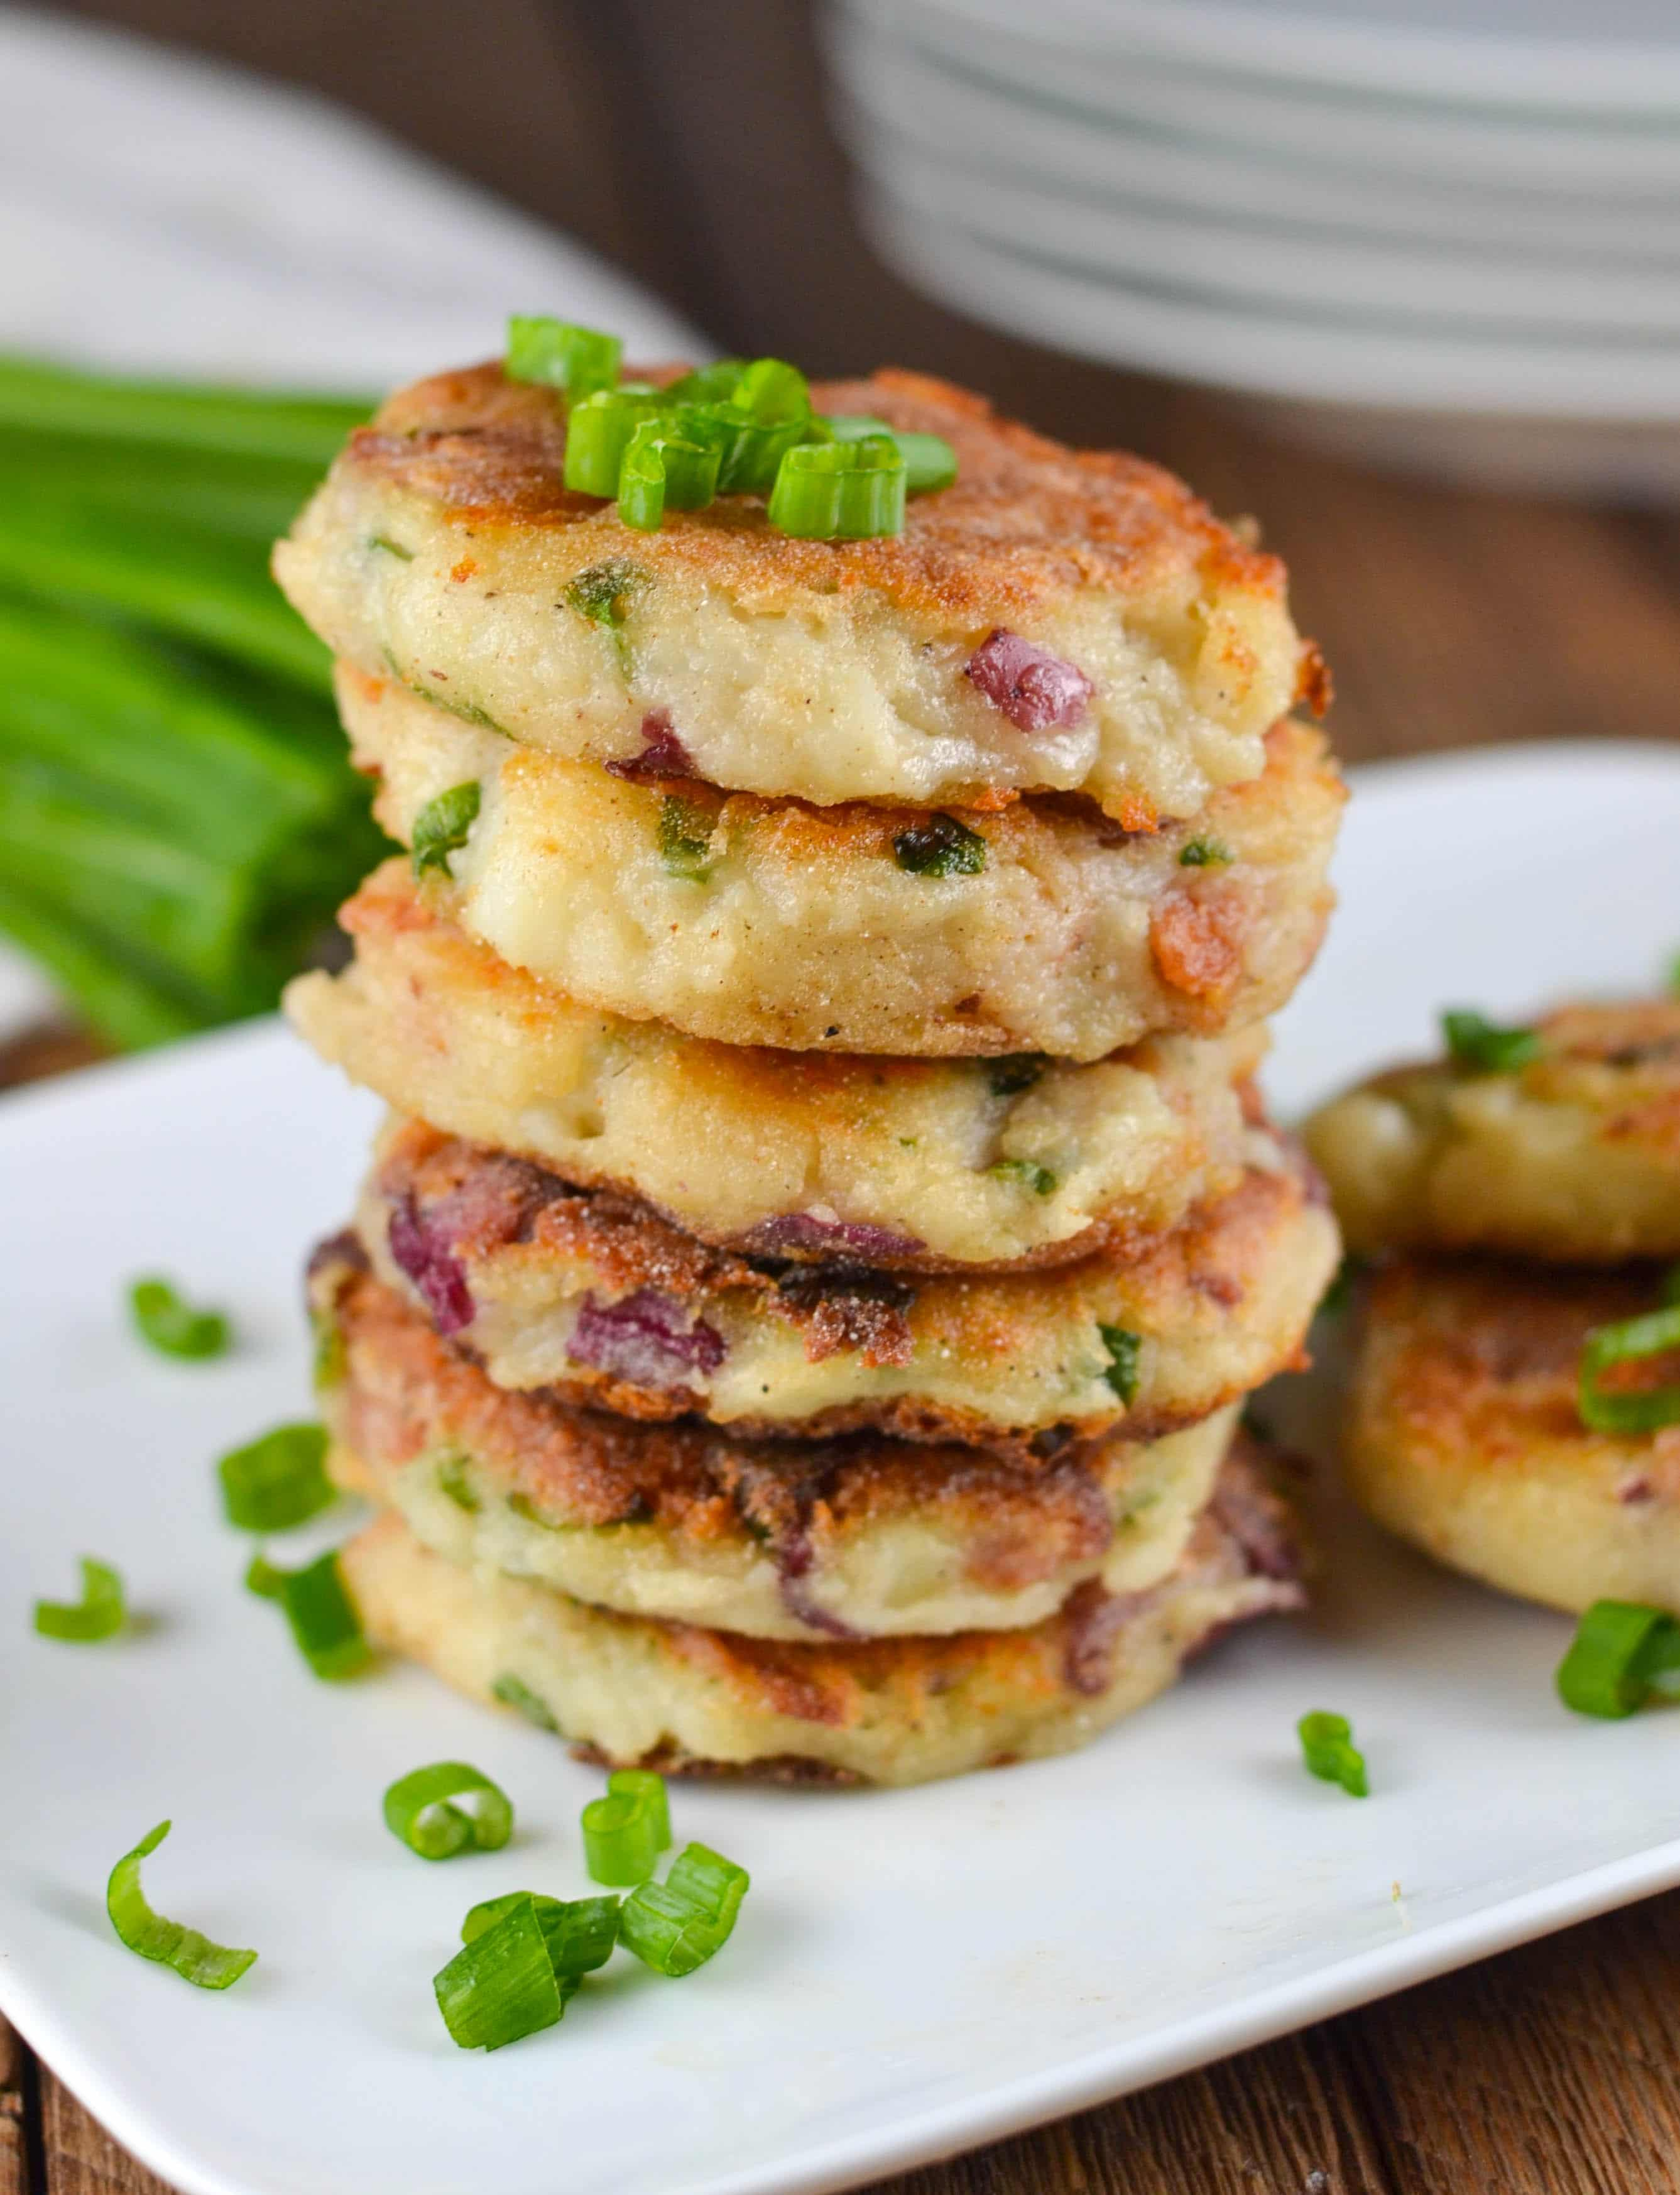 A stack of mashed potato cakes topped with green onions and bacon.